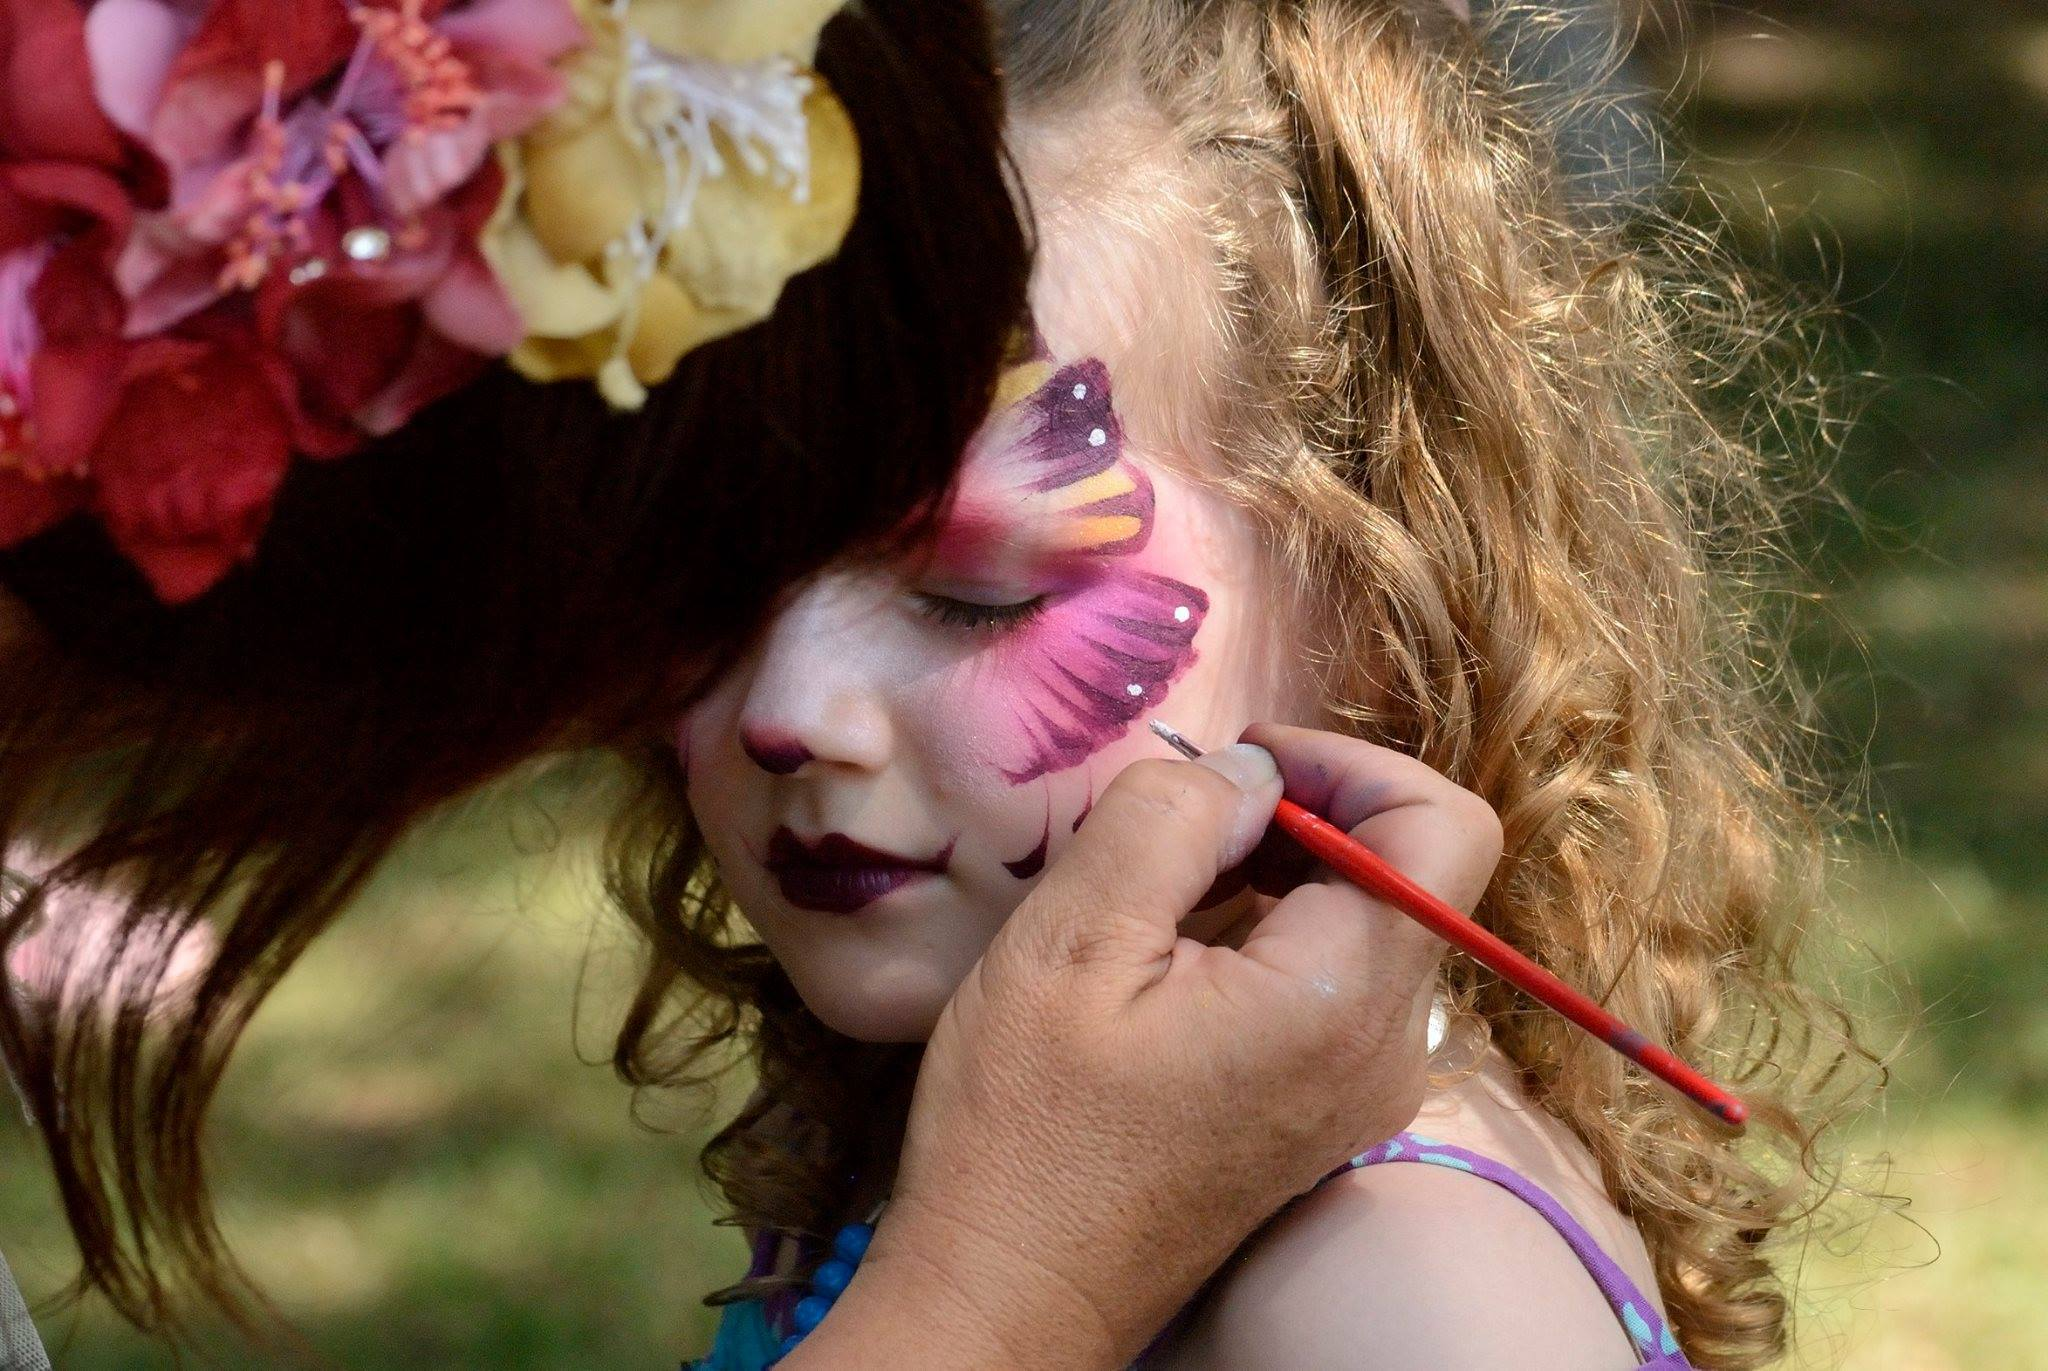 Maquillages enfants et adultes